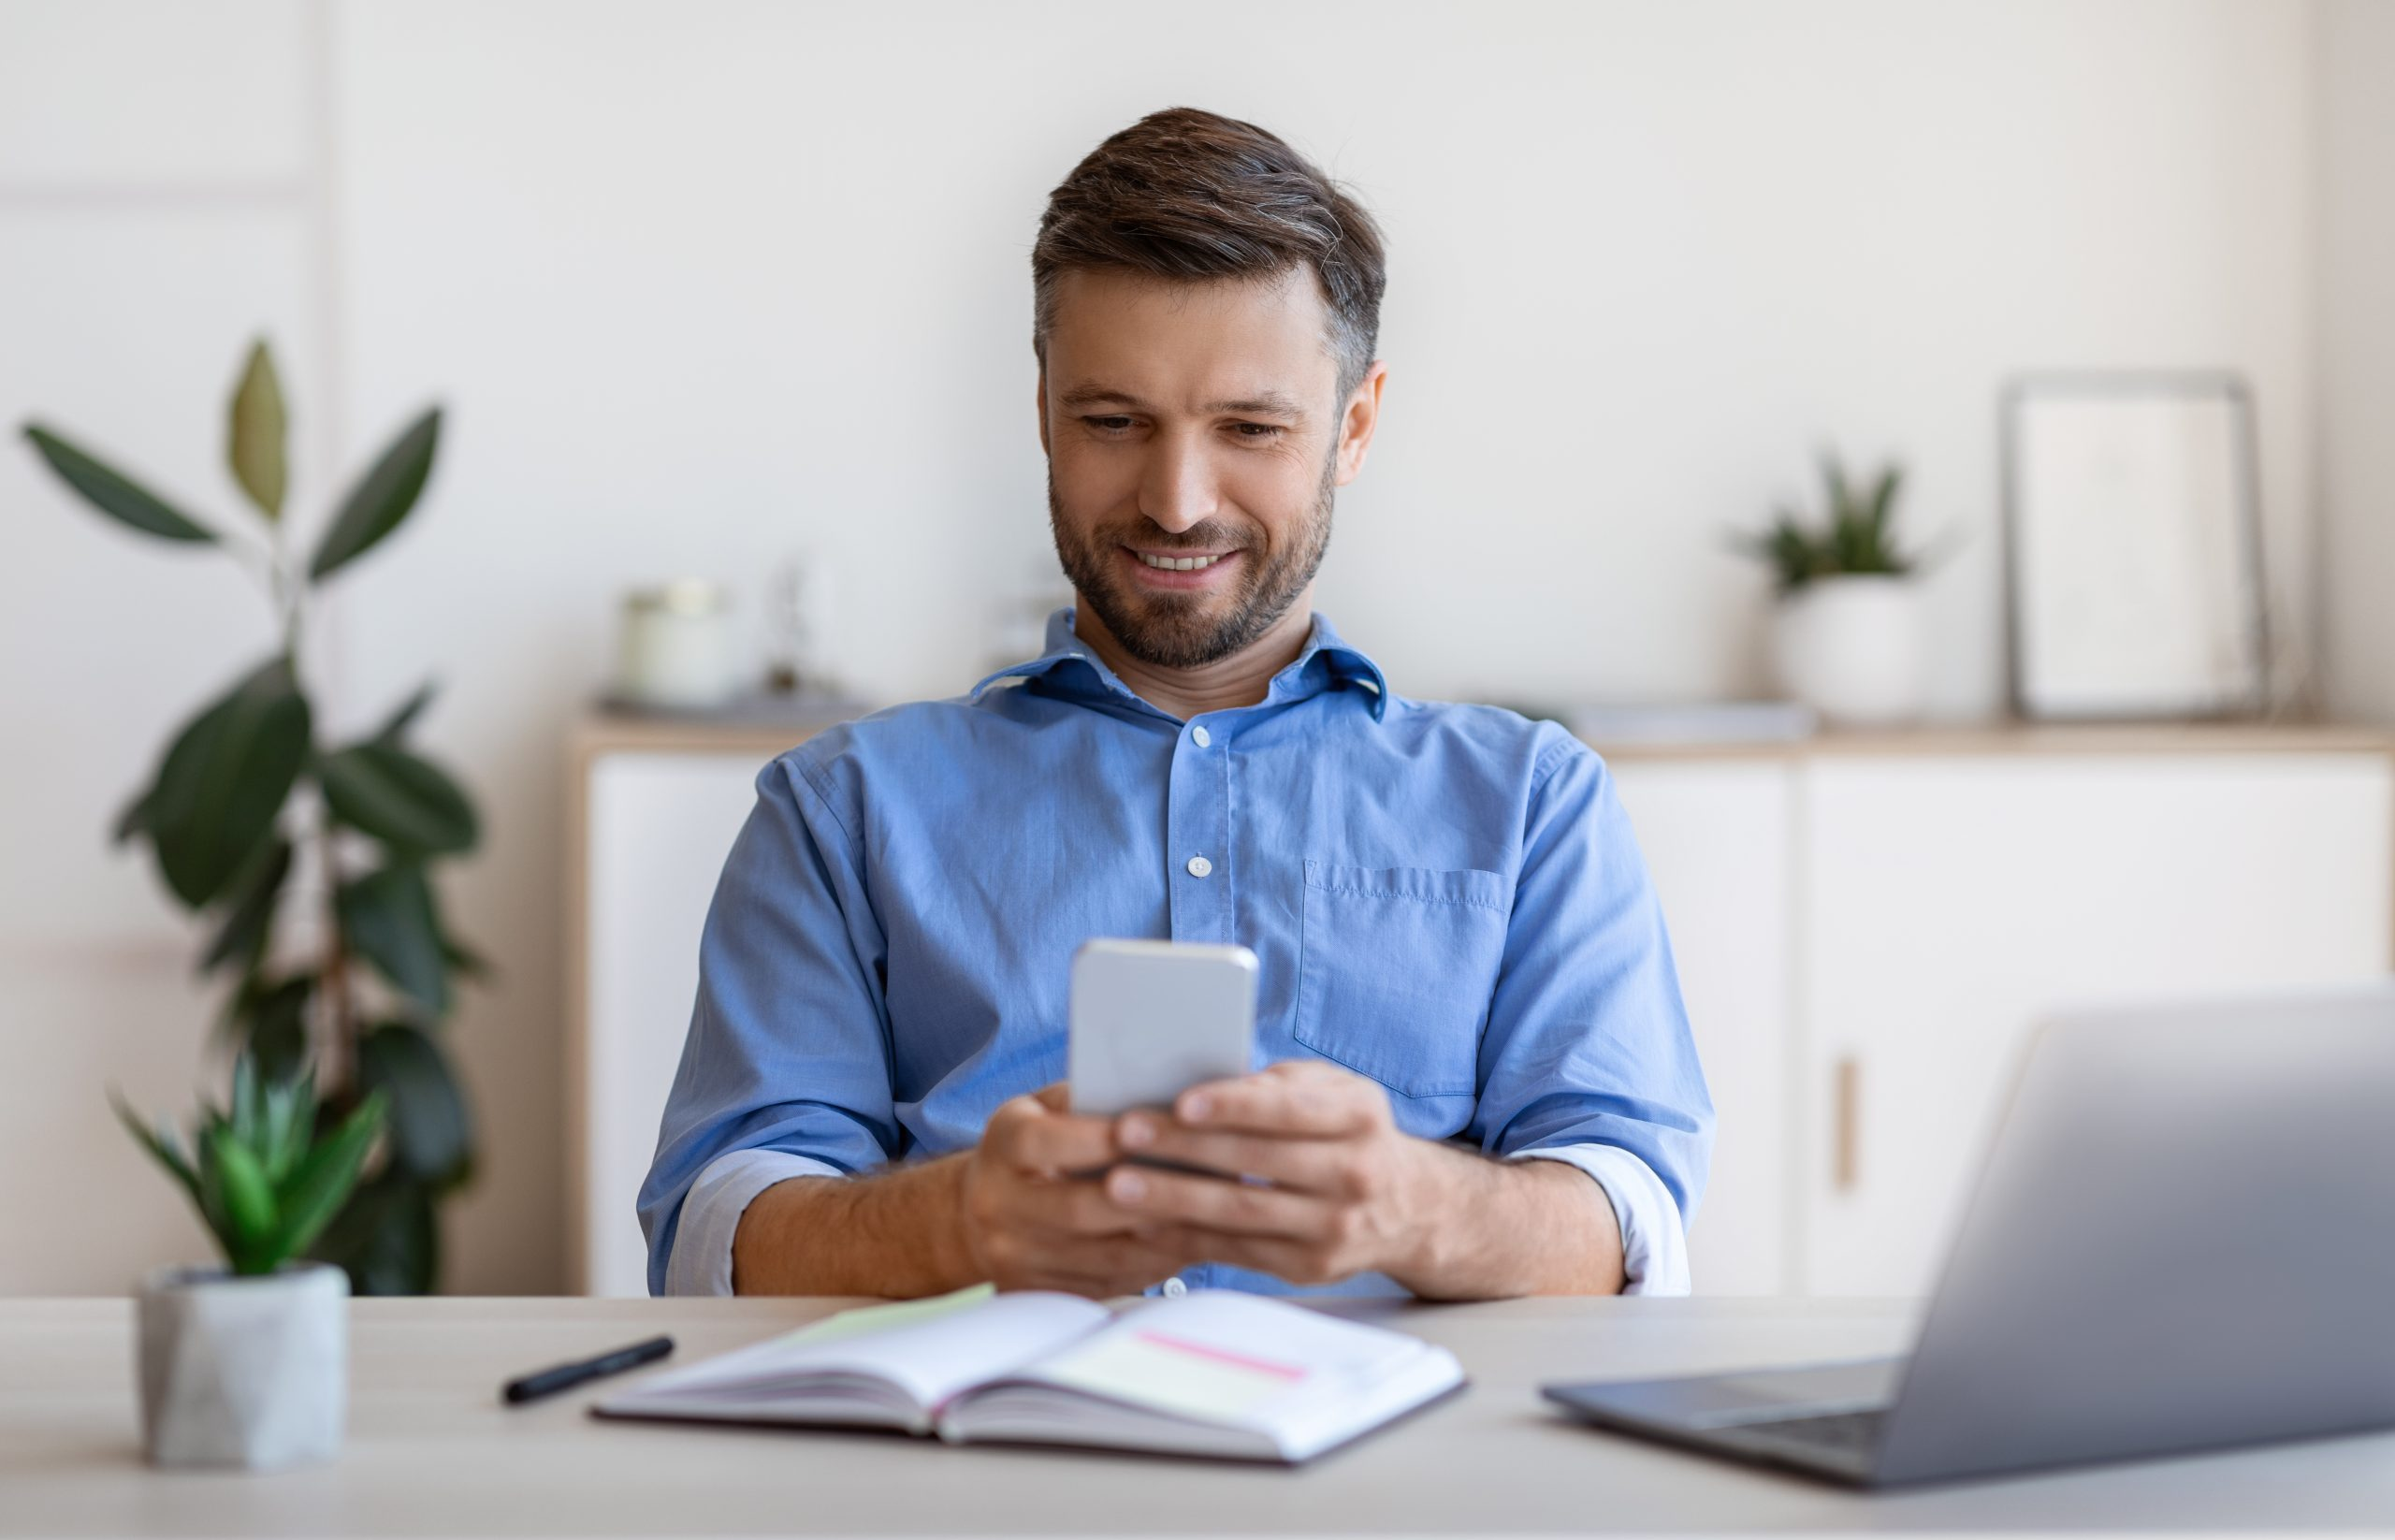 Smiling Business Man Messaging On Smartphone While Relaxing At Workplace In Office, Texting With Friends Or Family, Enjoying Mobile Communication, Having Break In Work, Sitting At Desk With Laptop